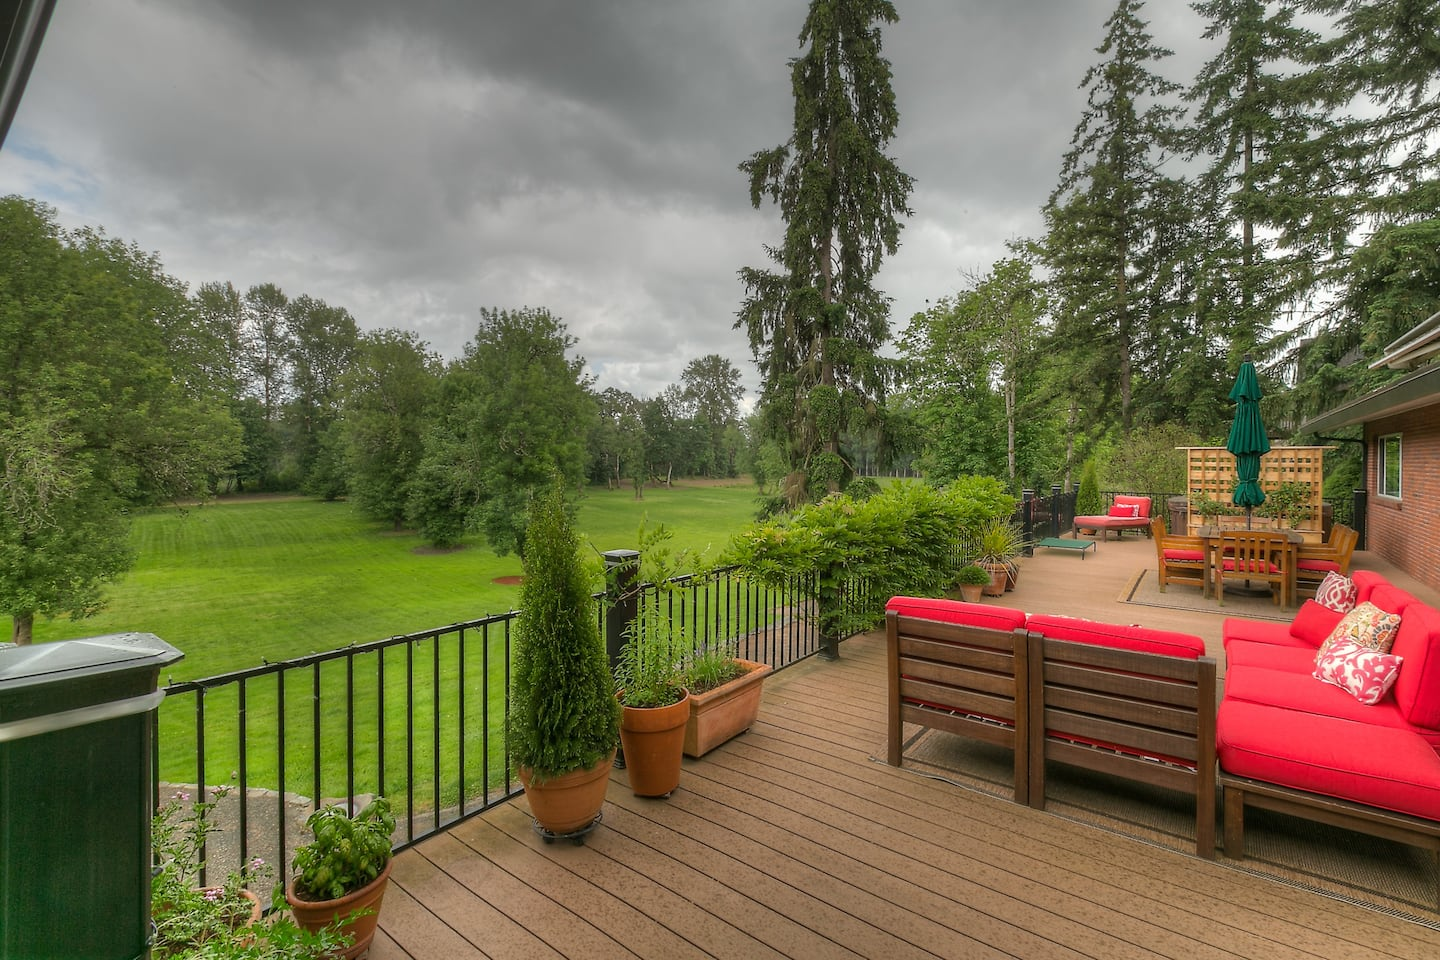 AirBnB in Independence with Willamette Valley views